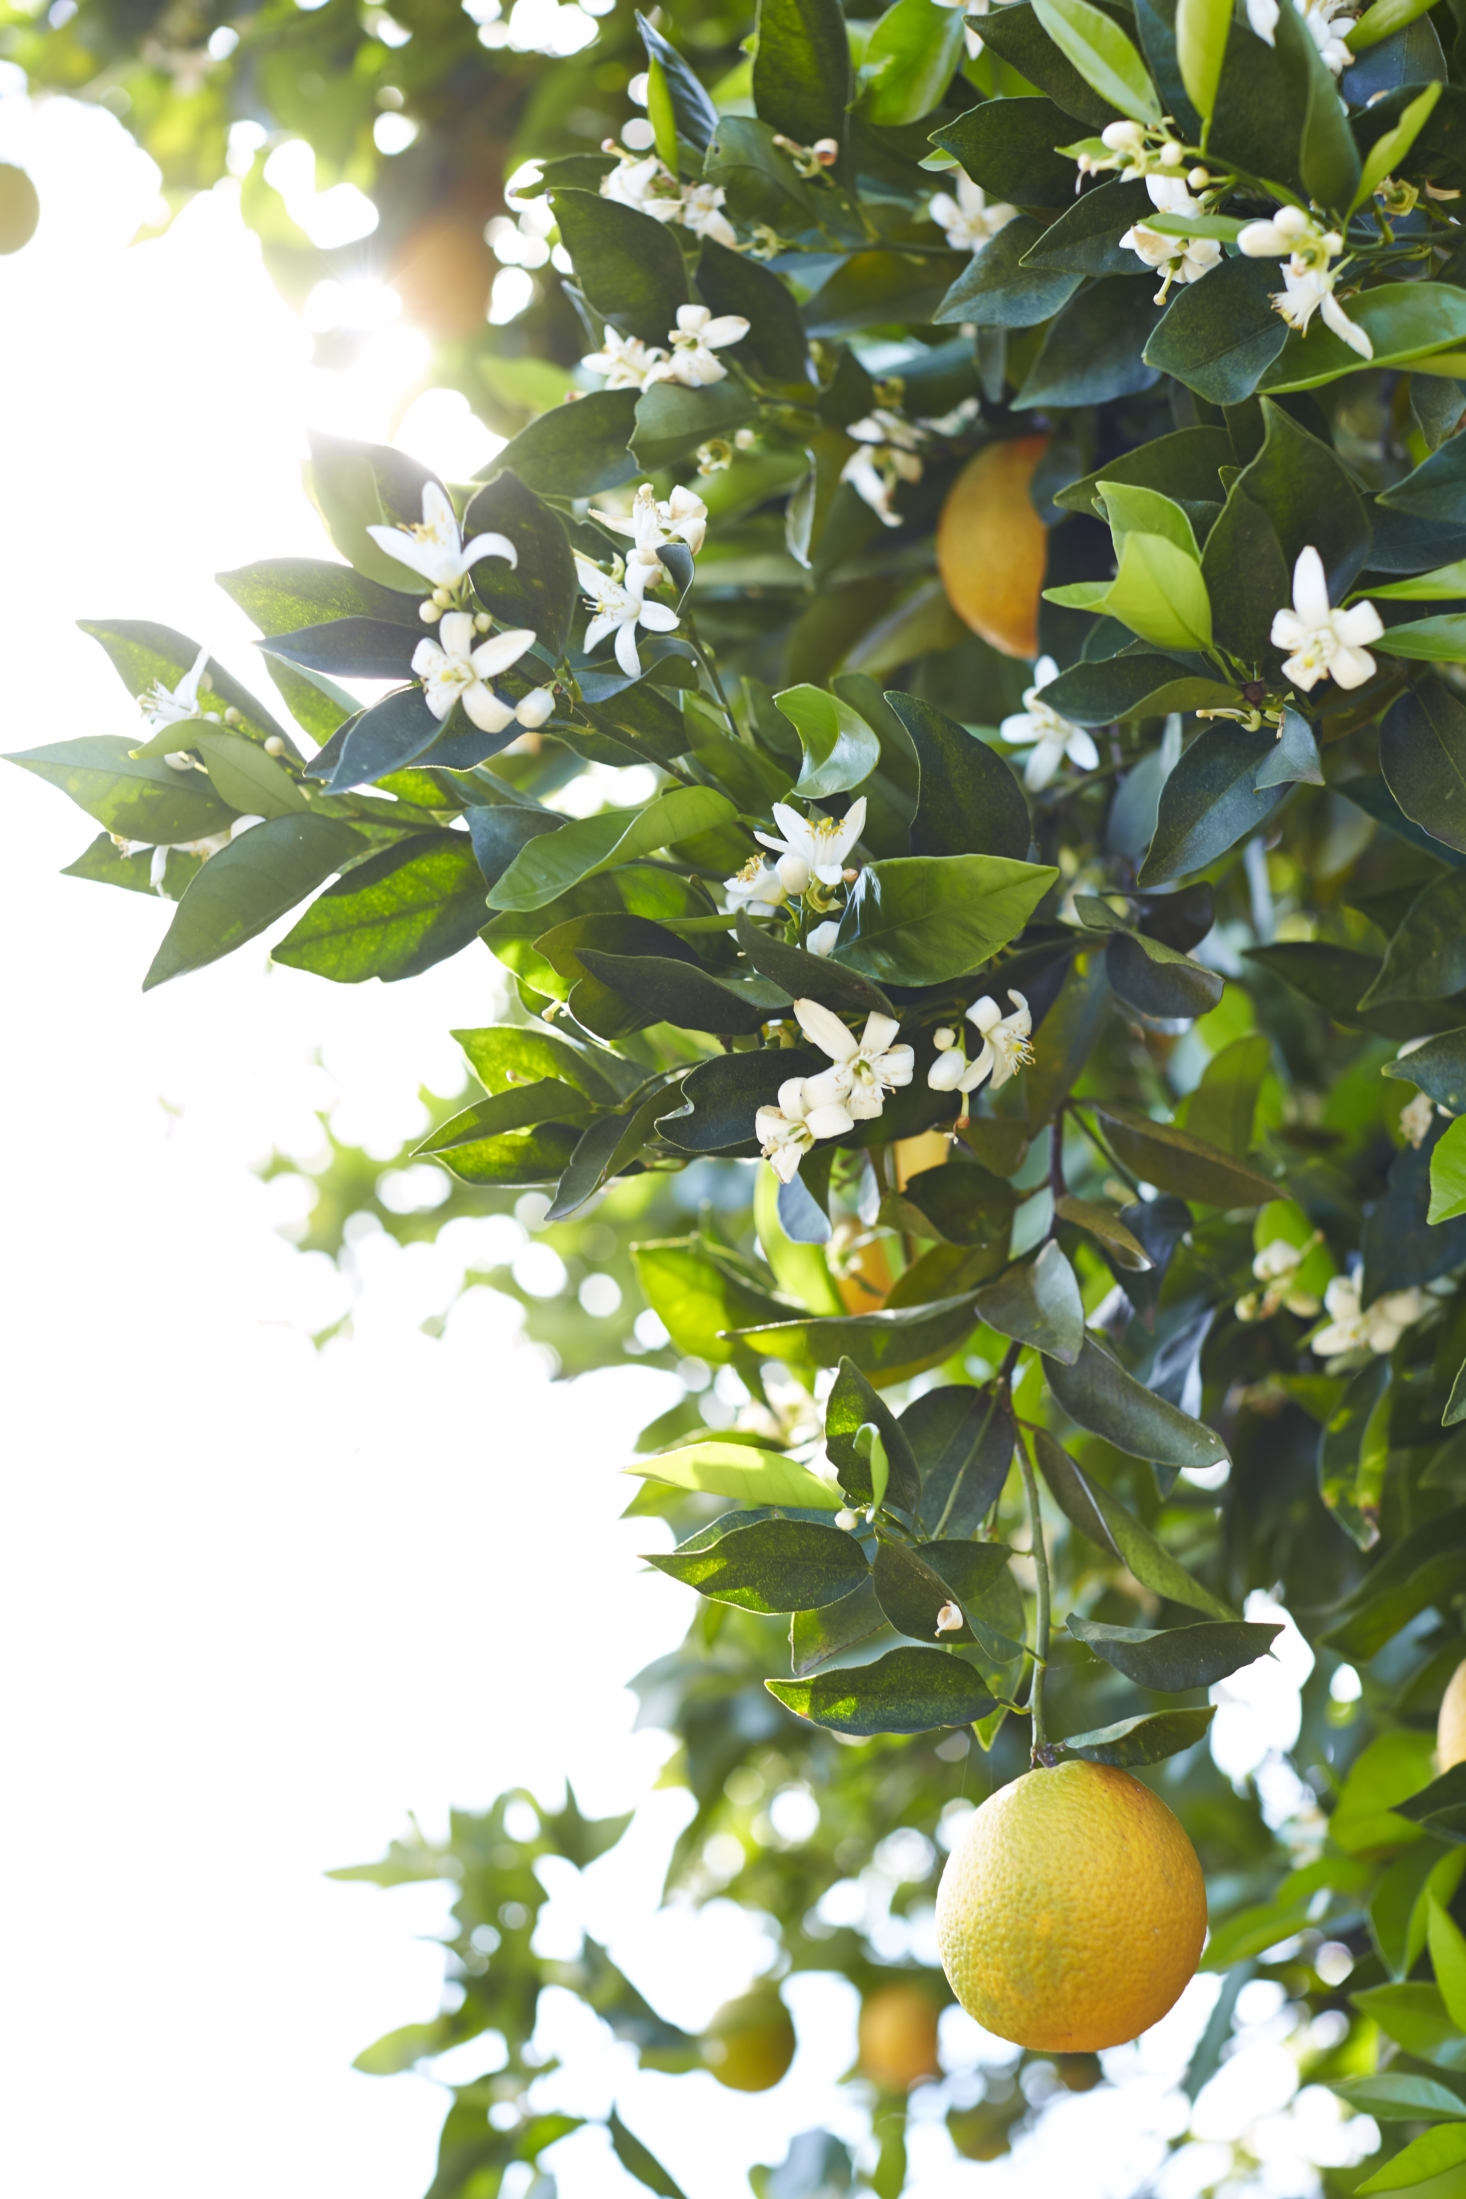 The garden is lush with fruit and citrus trees: &#8